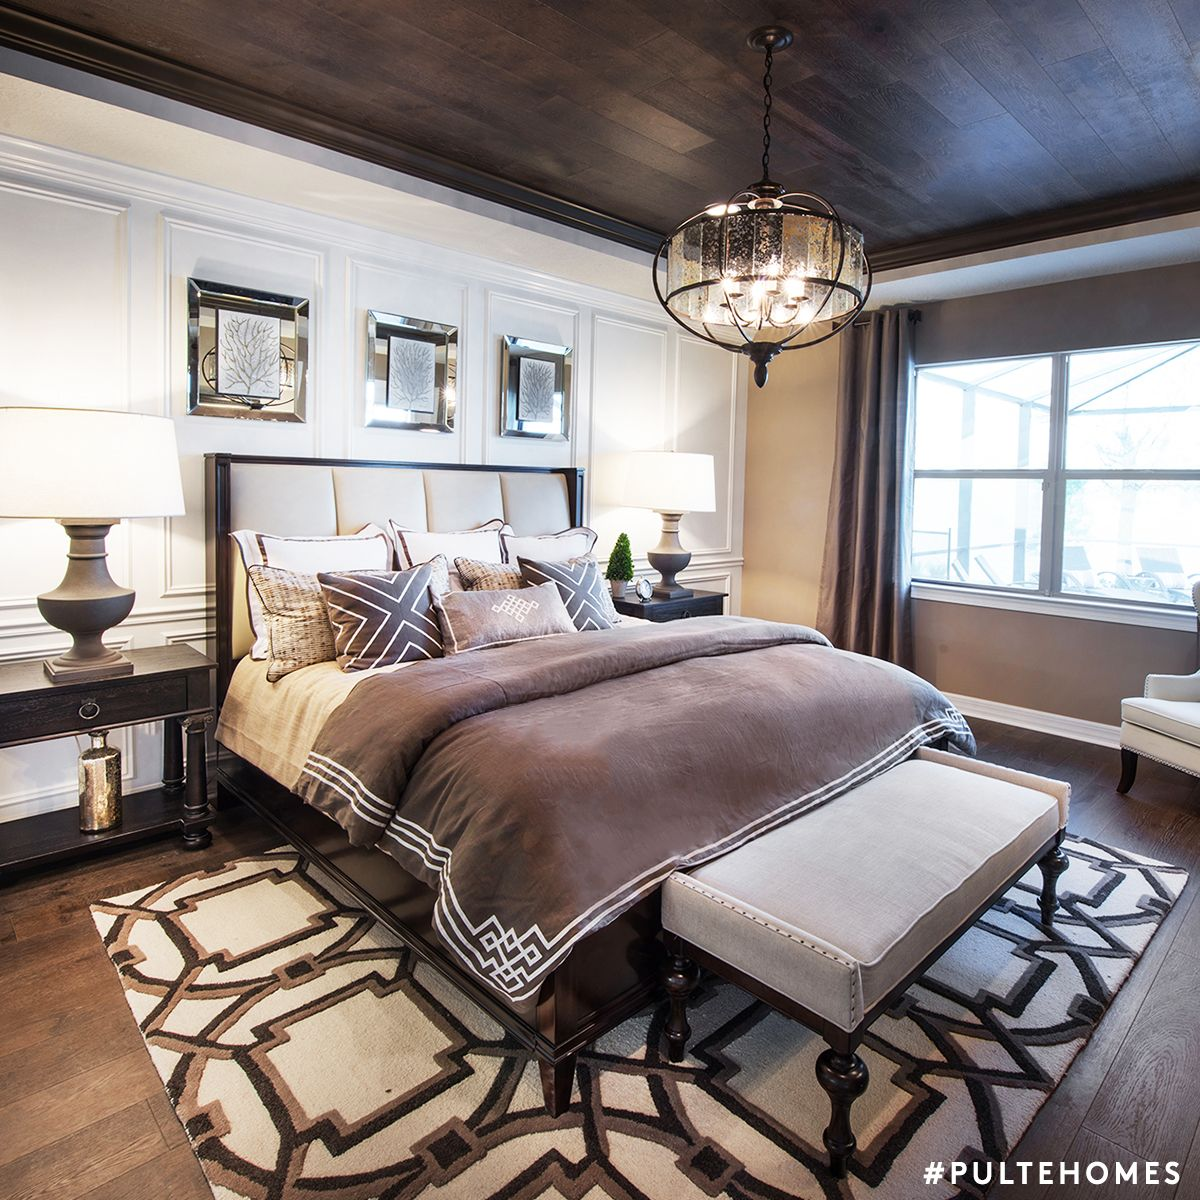 Design Tip: Balance Rich, Masculine Browns With Chic